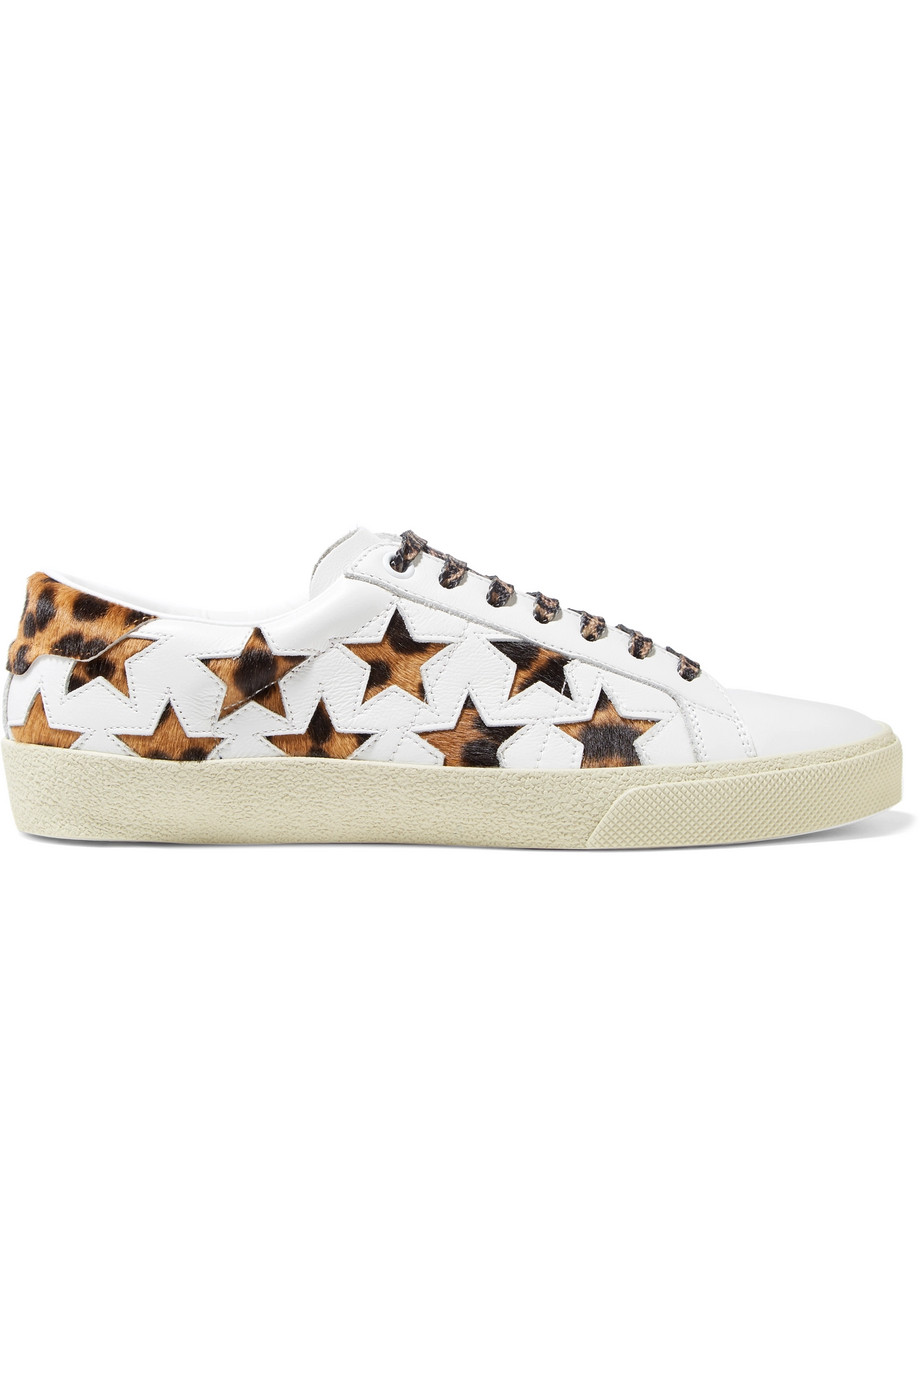 Court Classic leopard-print calf hair and leather sneakers